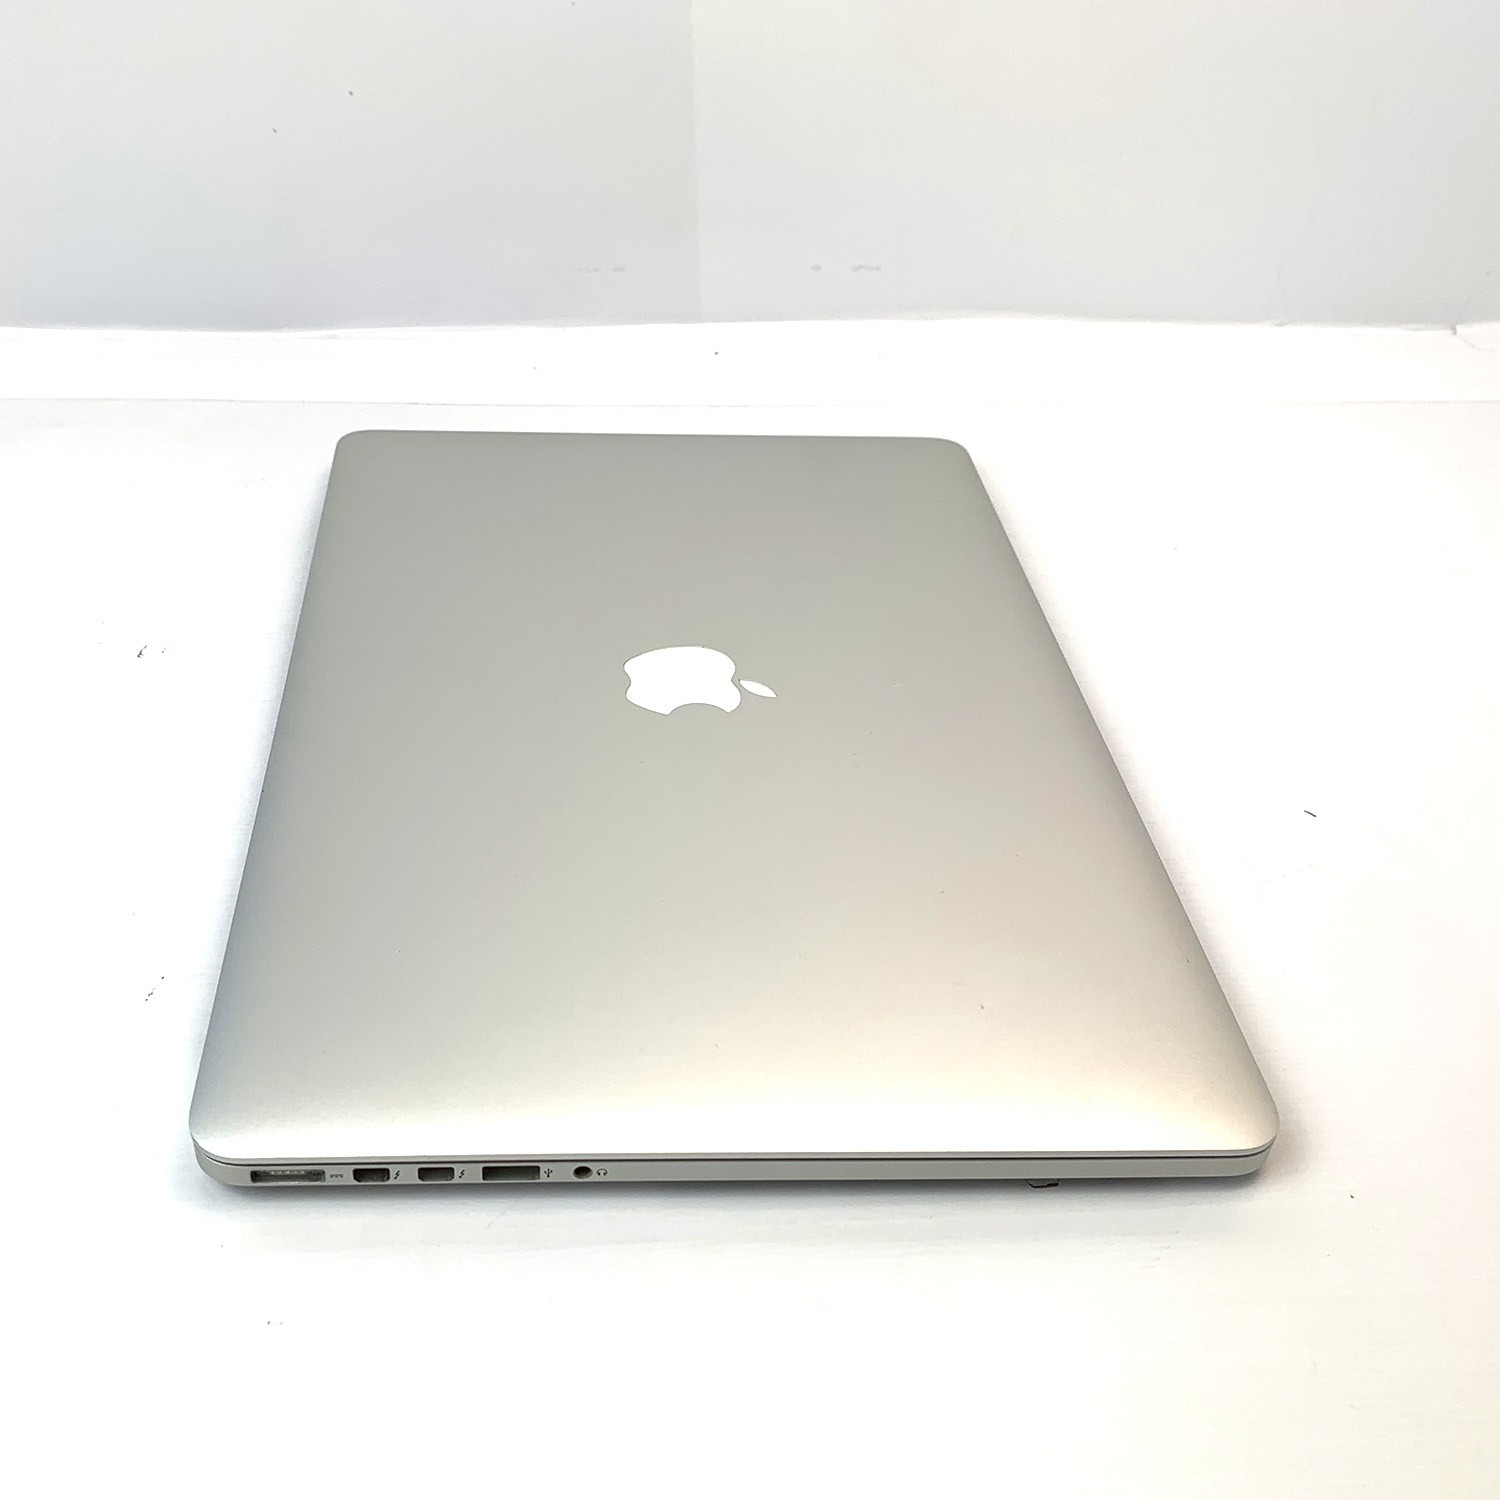 Macbook Pro Retina 15 i7 2.7Ghz 8GB 512GB SSD MD831LL/A Seminovo